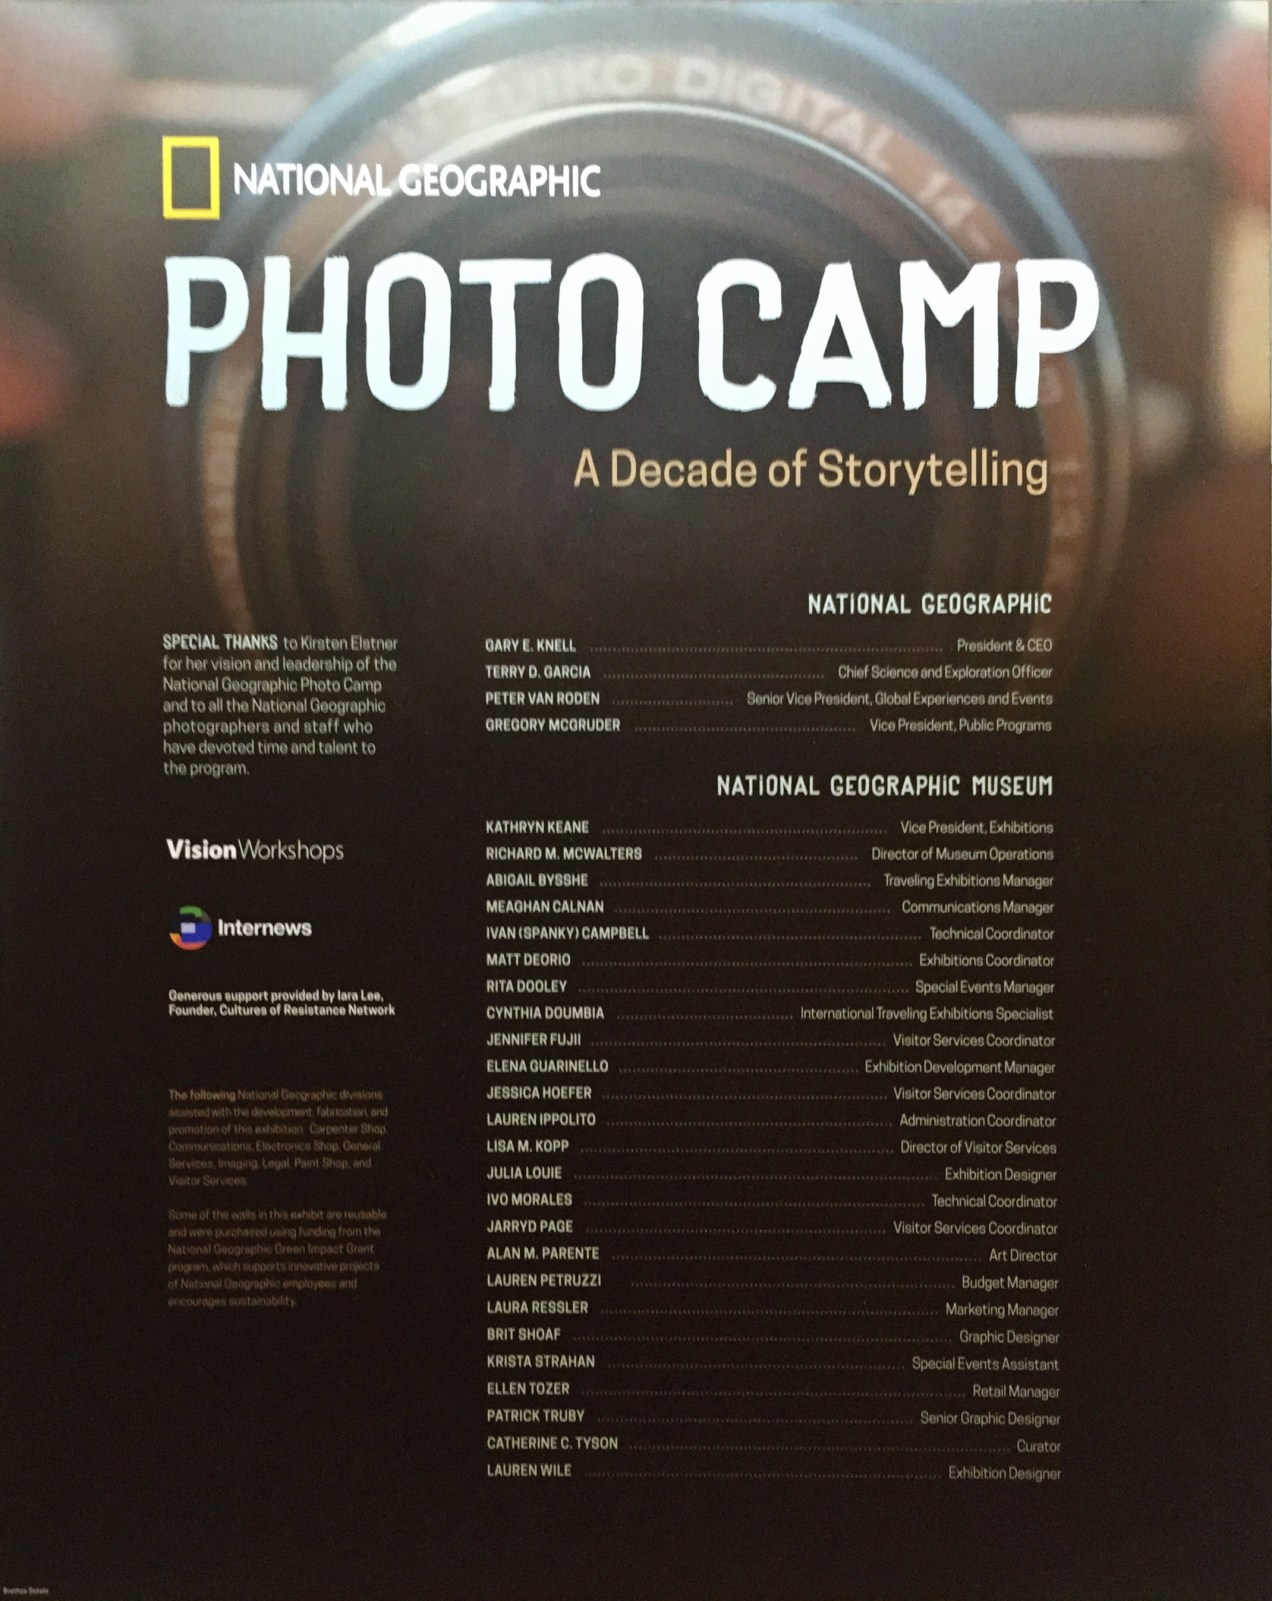 photo camp - a decade of storytelling exhibit at national geographic